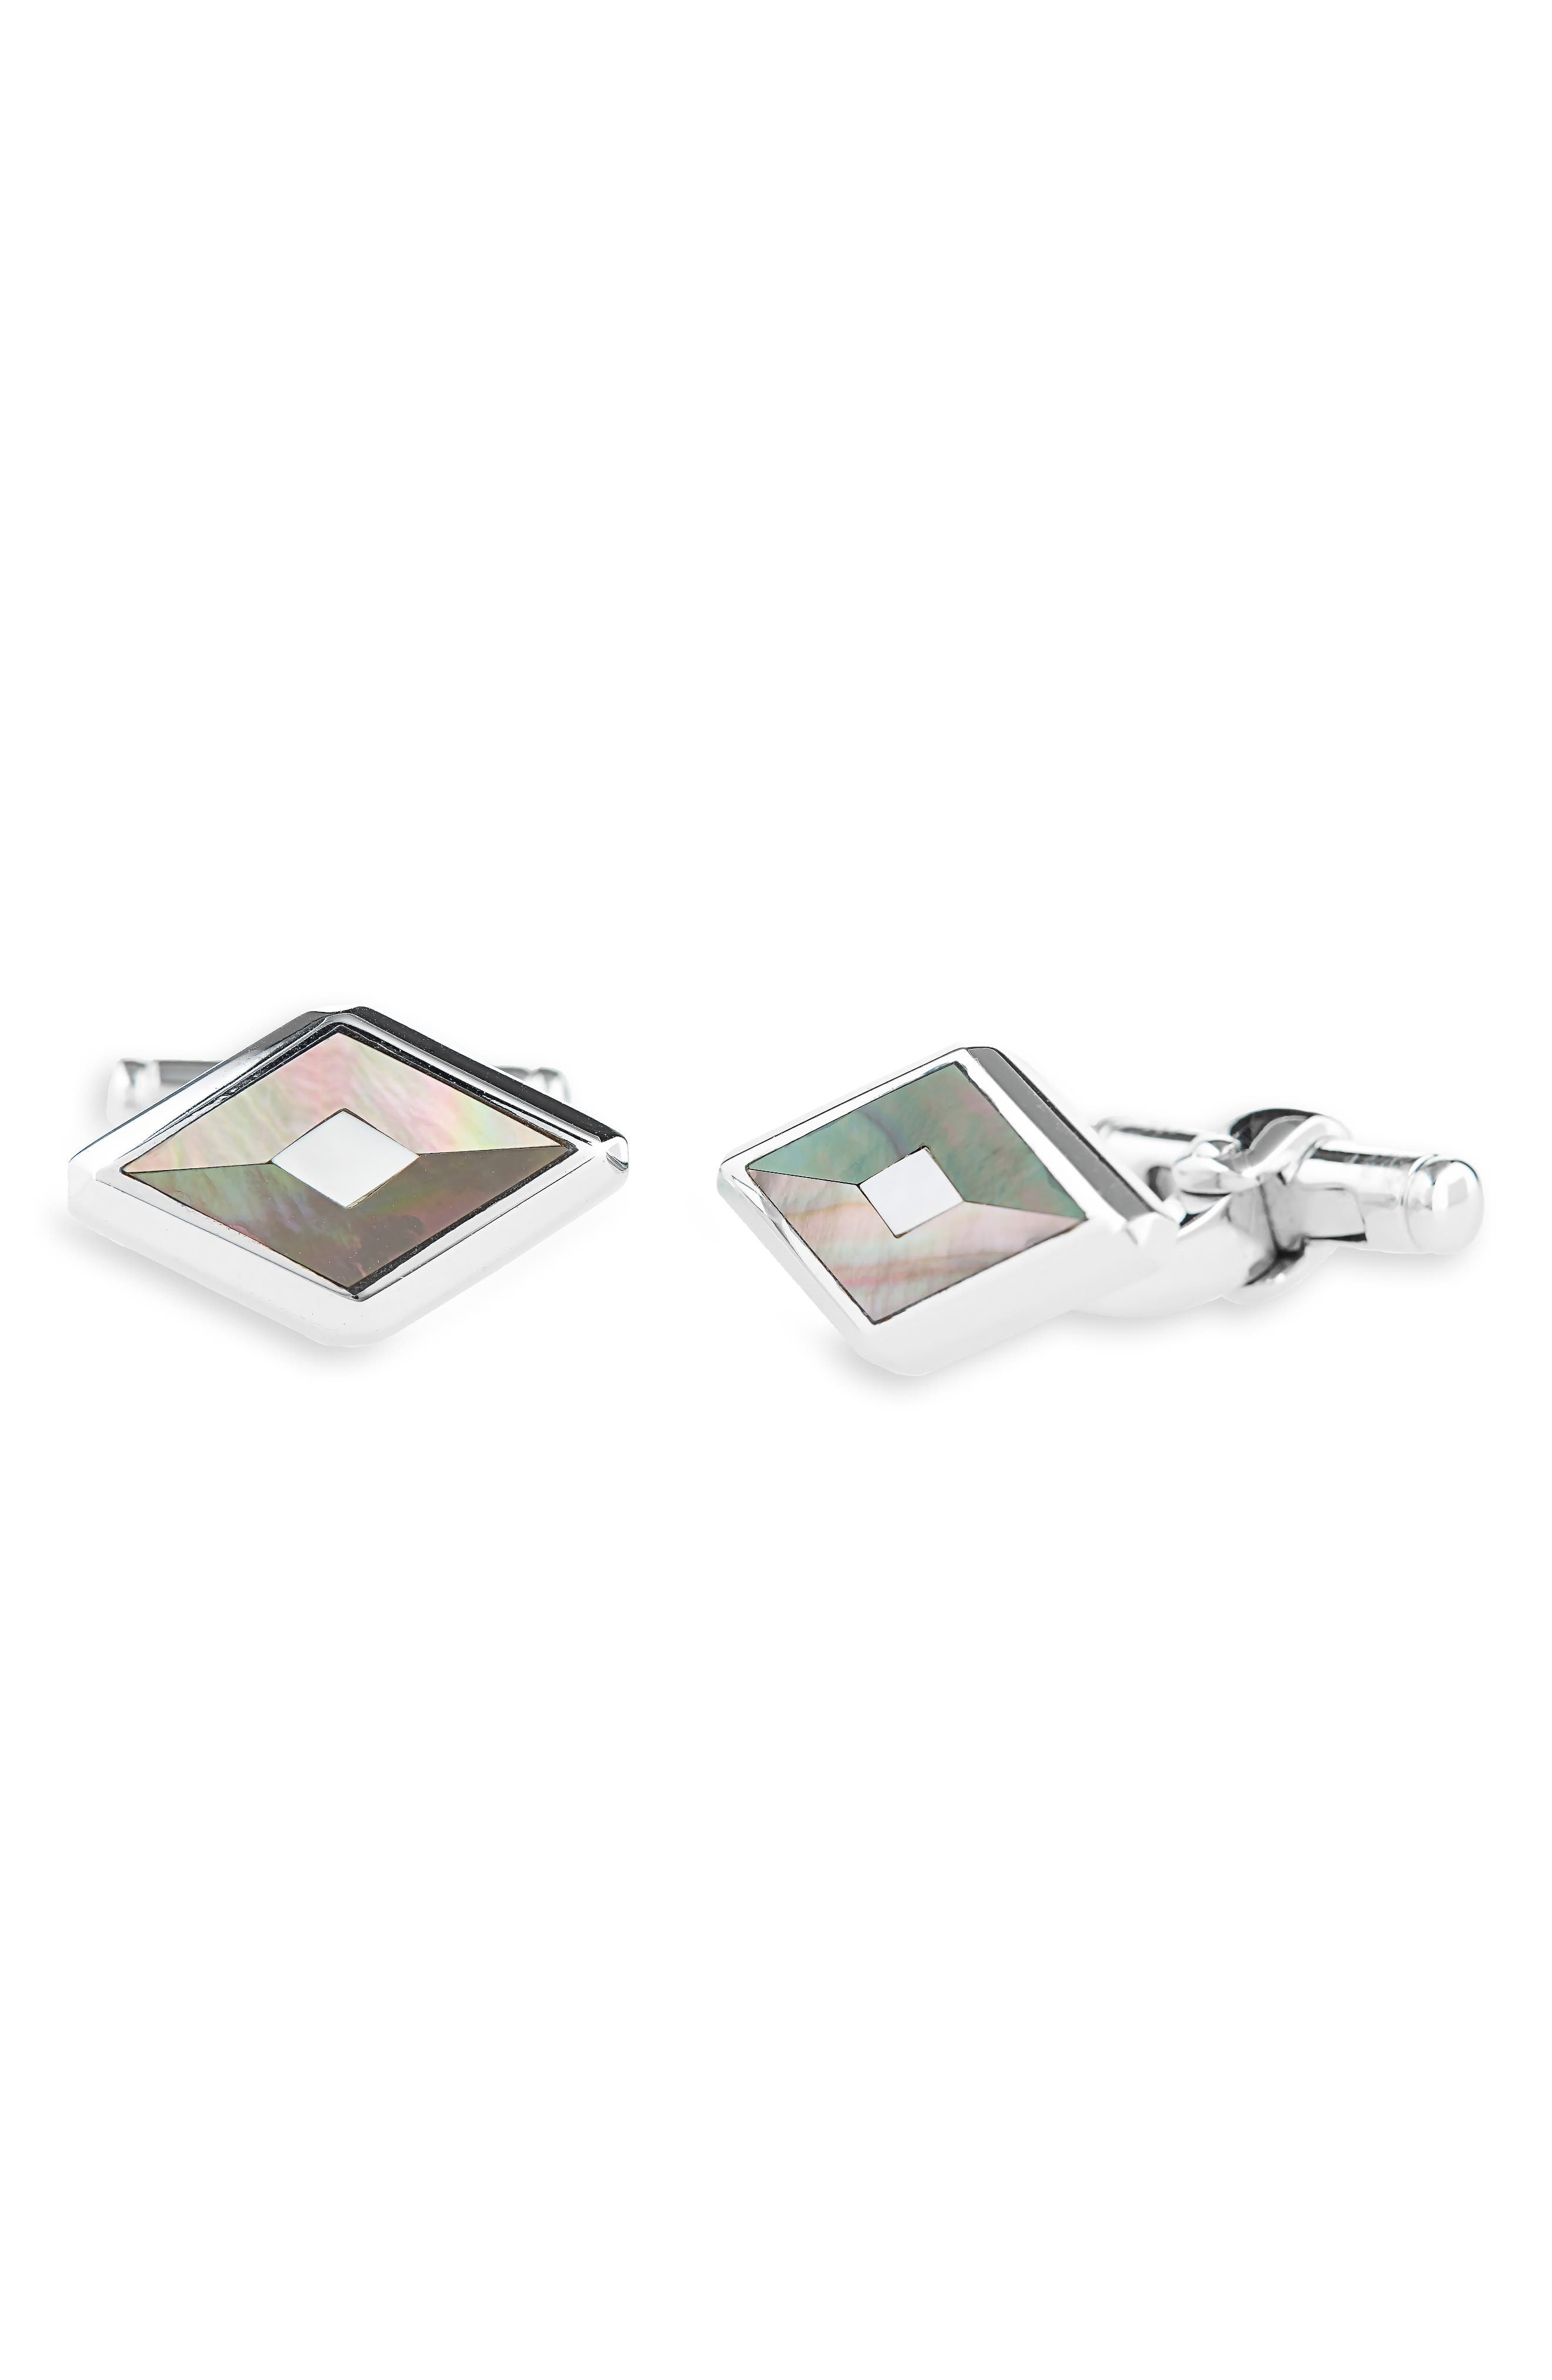 DUNHILL Diamond Stud Cuff Links in Silver